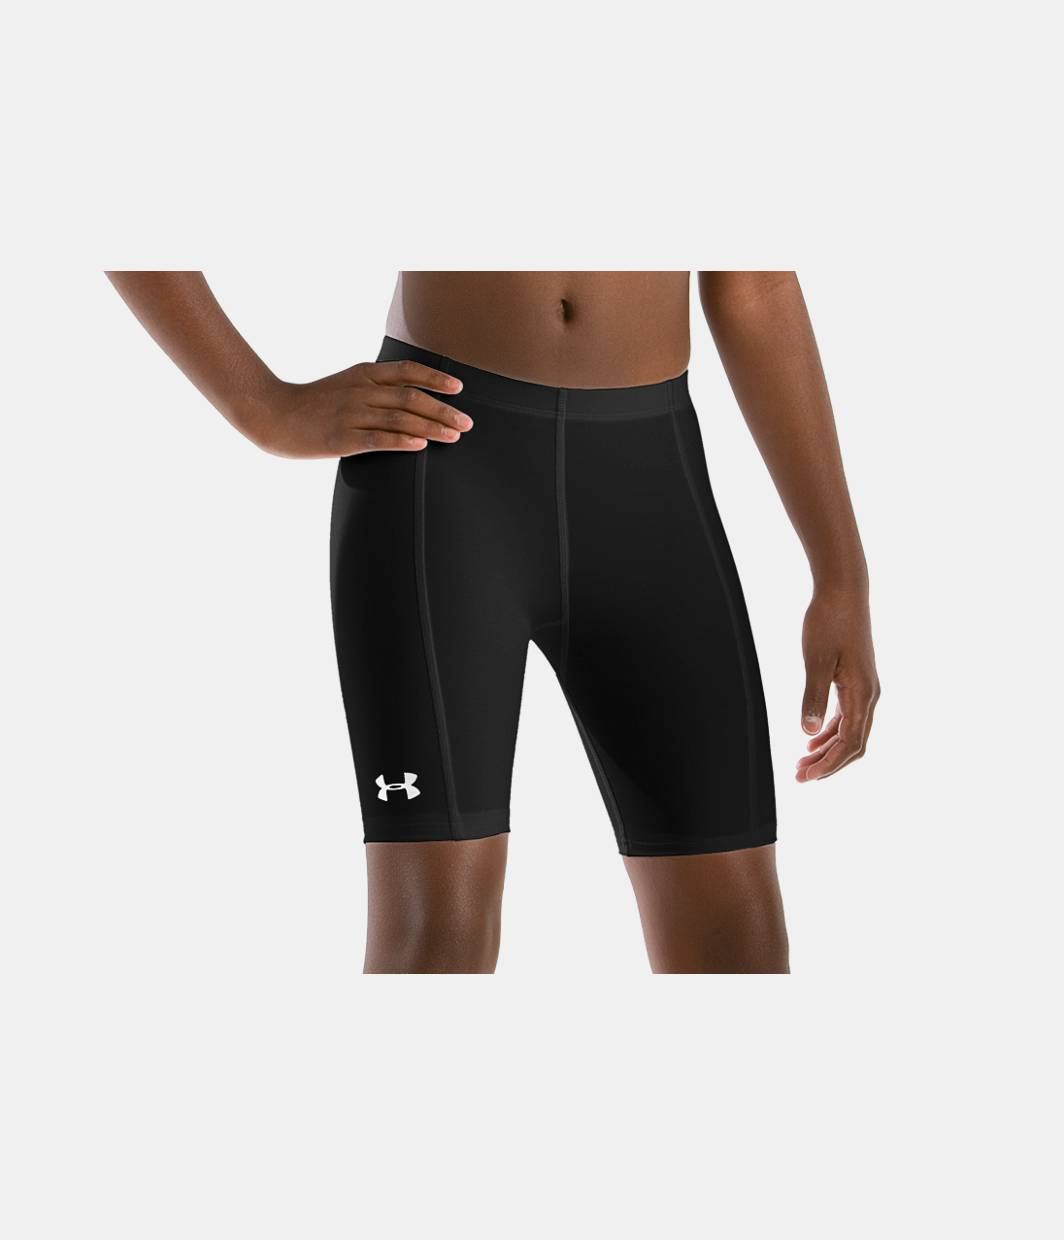 under armour compression shorts size guide